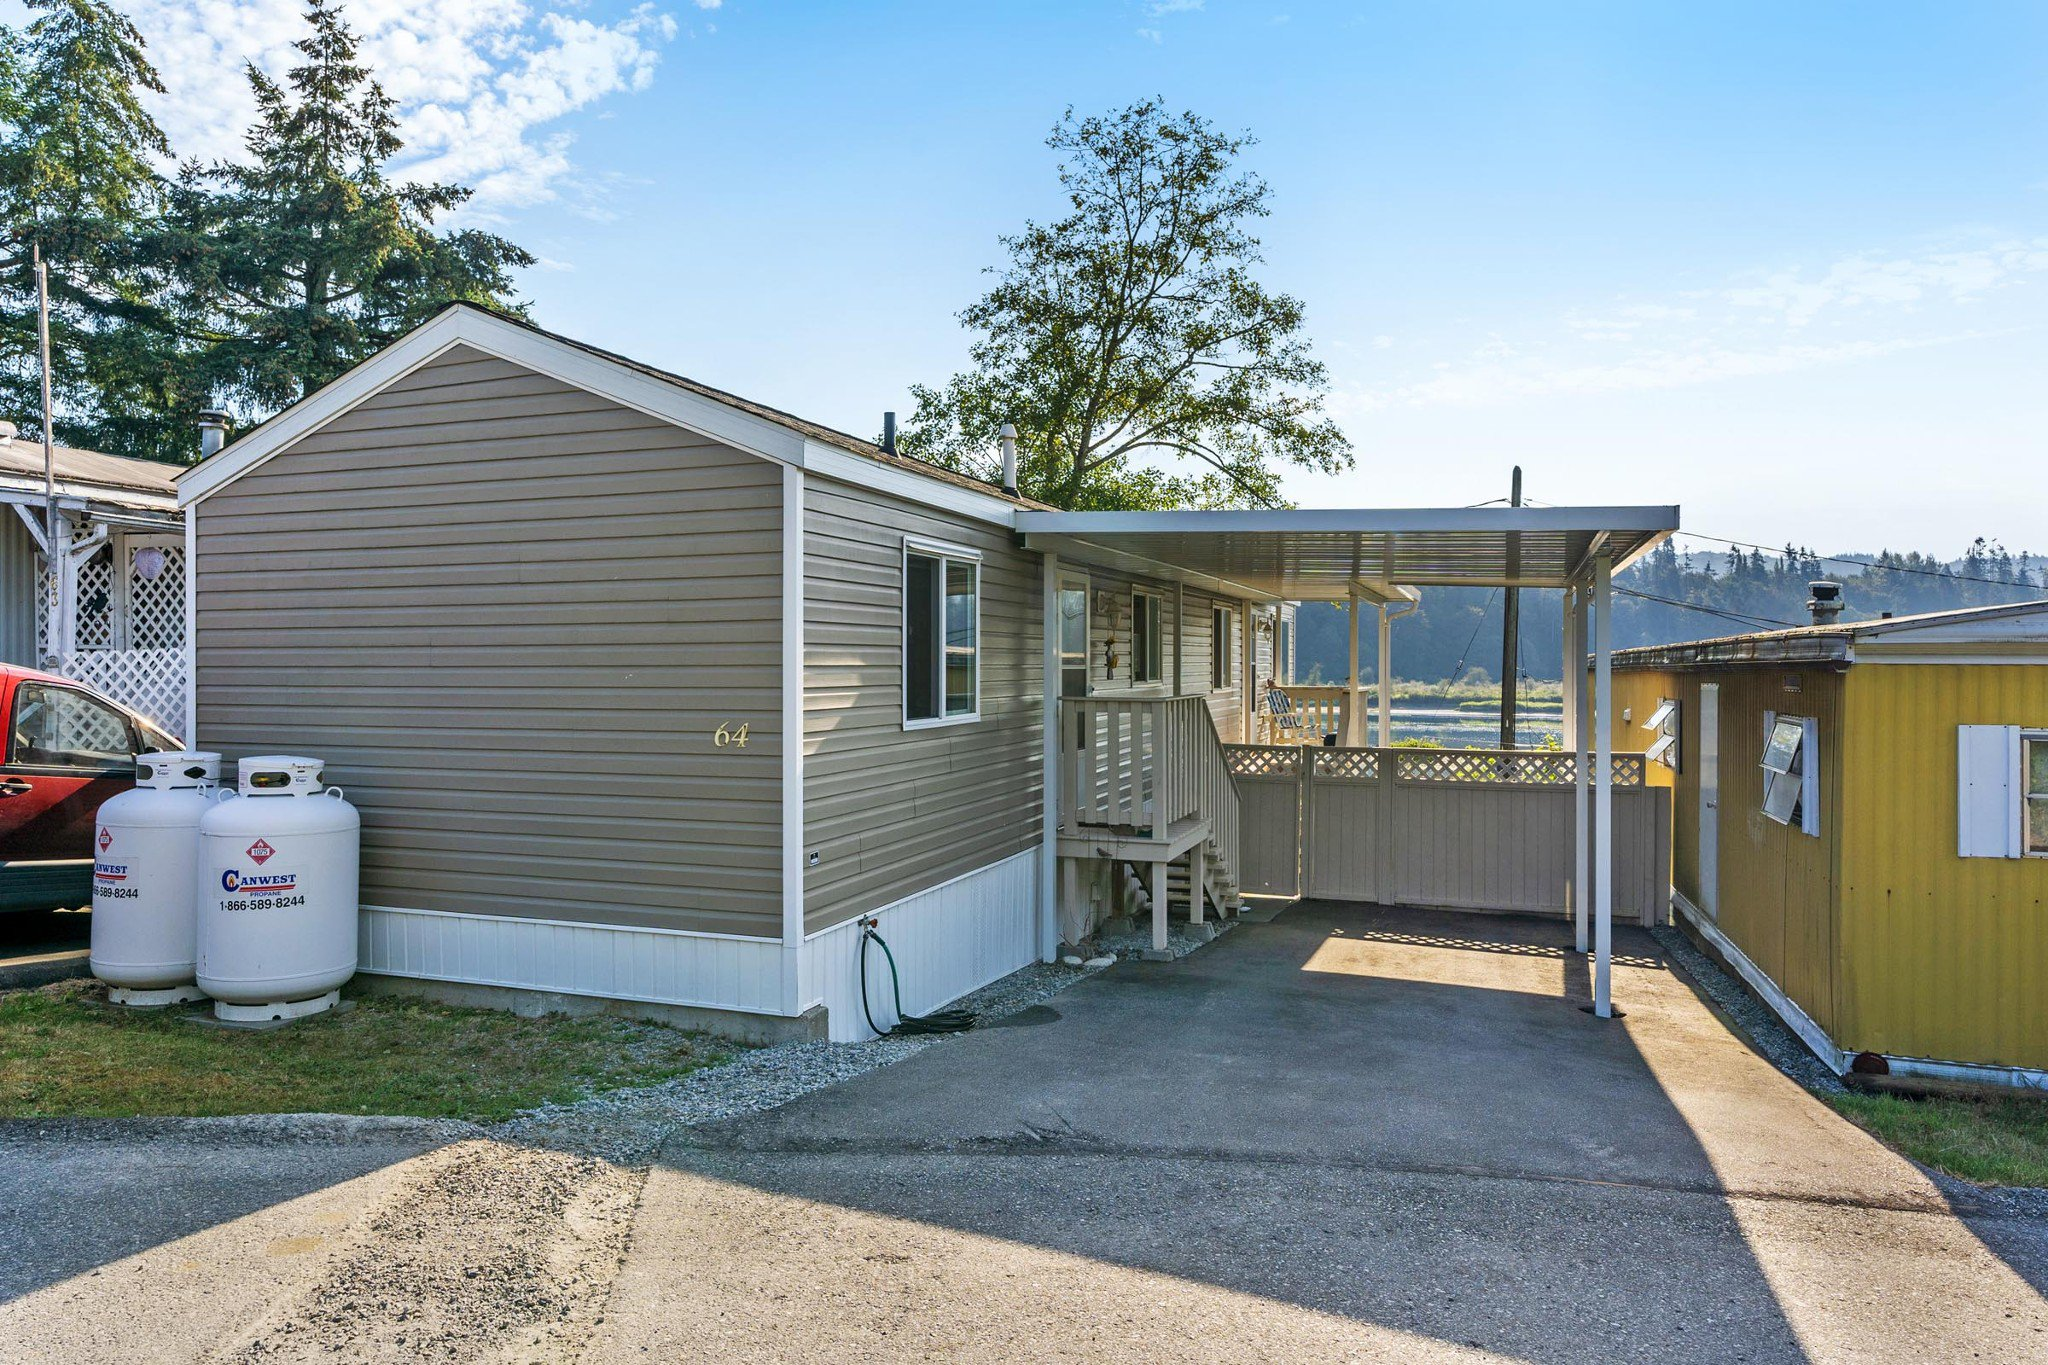 """Main Photo: 64 - 9950 WILSON Street in Mission: Stave Falls Manufactured Home for sale in """"RUSKIN PLACE"""" : MLS®# R2358032"""